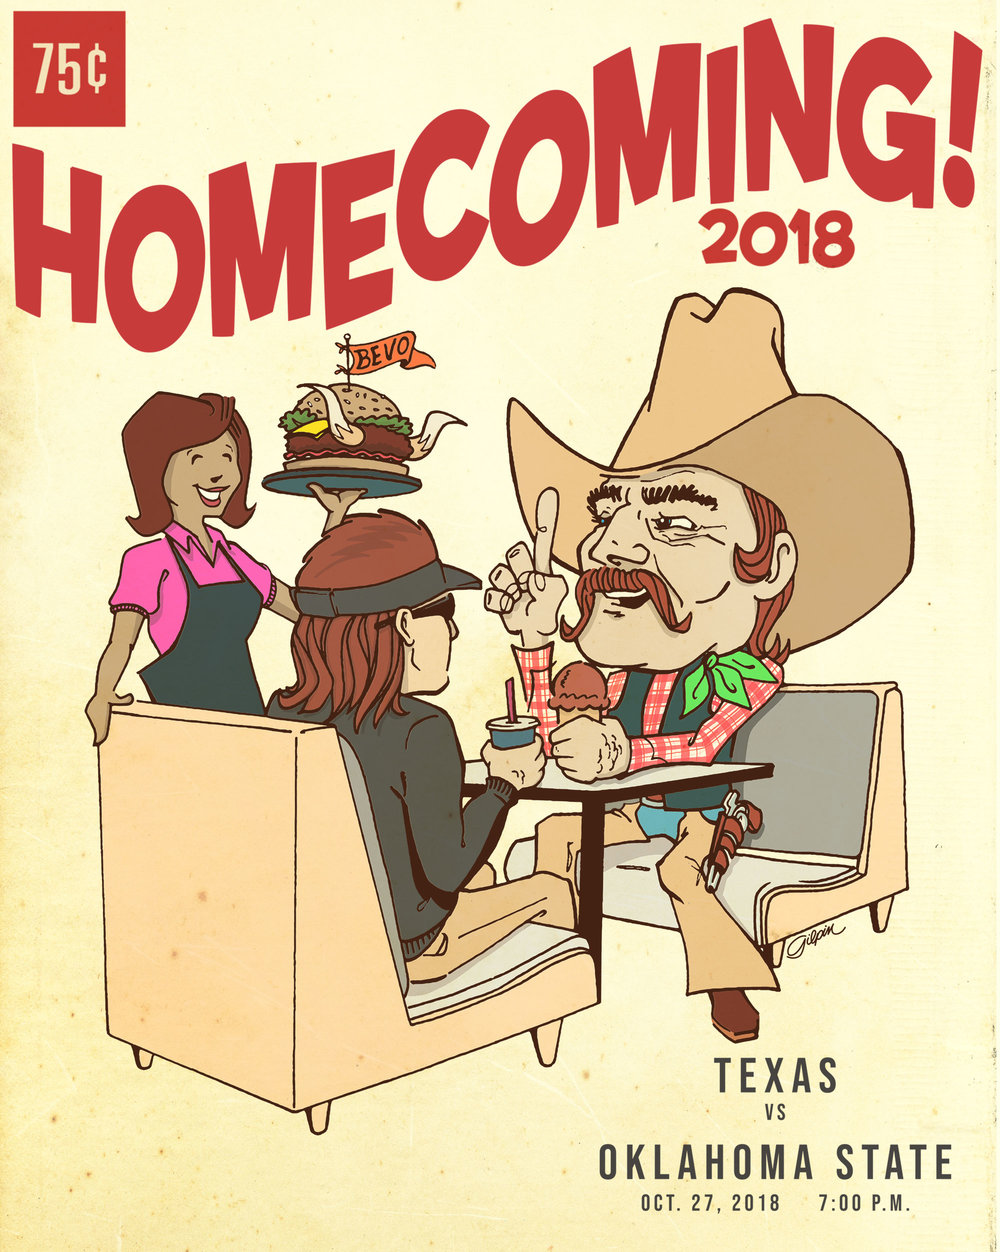 OSU_Homecoming_2018_Color01.jpg